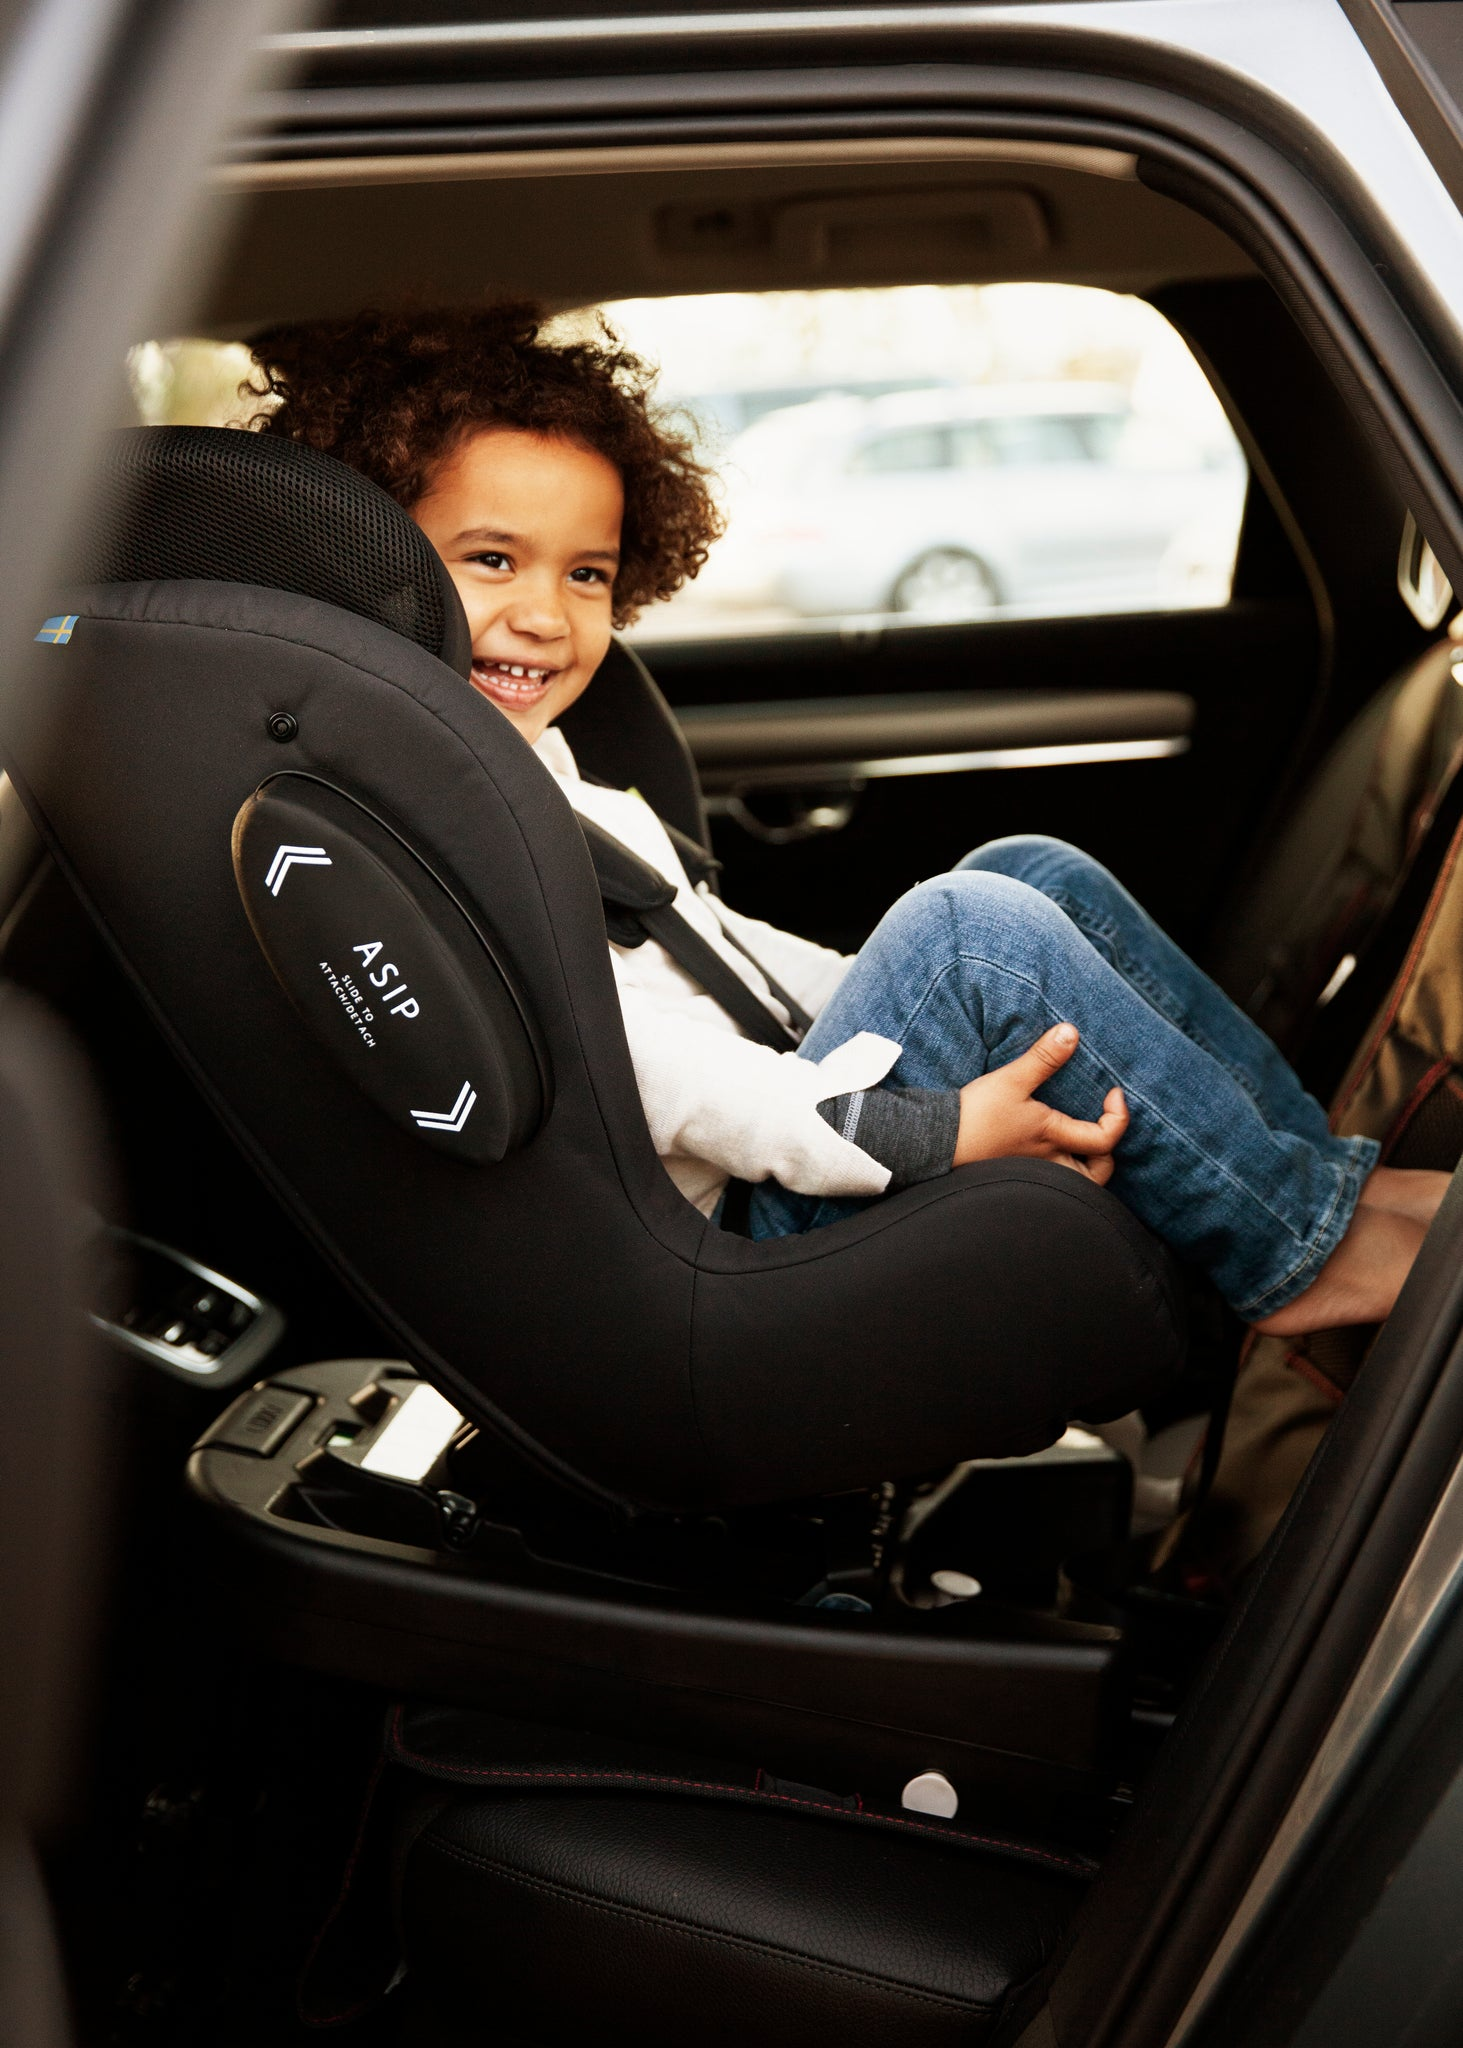 Axkid Modukid I 18kg Rear Facing Car Seat & Modukid Base – Rearfacing.ie